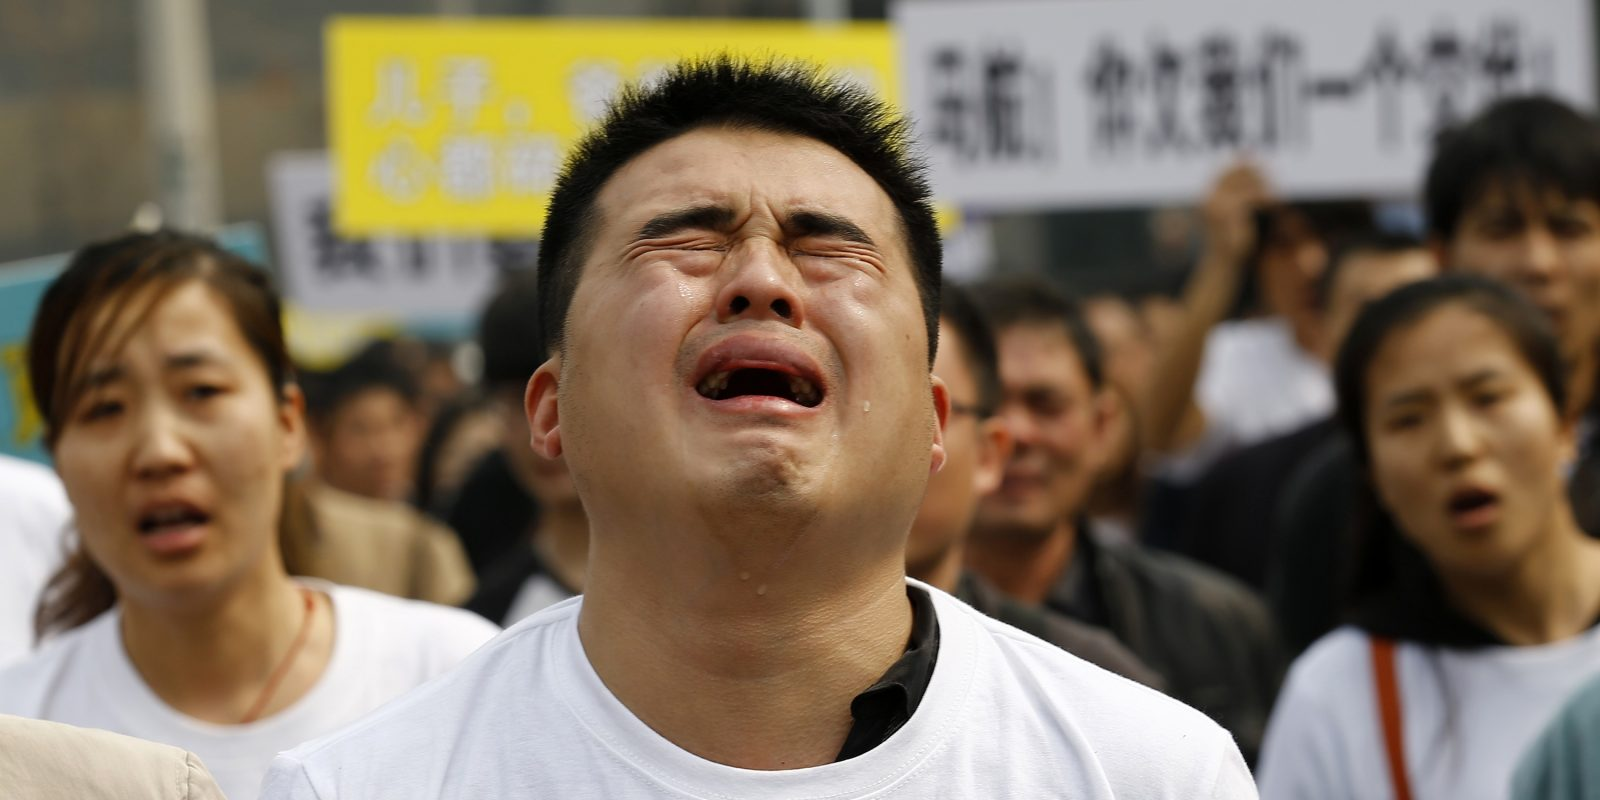 A family member of passenger on board Malaysia Airlines MH370 cries during protest in front of Malaysian embassy in Beijing. Imagen Por: A family member of a passenger on board Malaysia Airlines MH370 cries as he shouts slogans during a protest in front of the Malaysian embassy in Beijing, March 25, 2014. Angry relatives of Chinese passengers aboard the missing Malaysia Airlines plane denounced the Kuala Lumpur government and its national carrier as